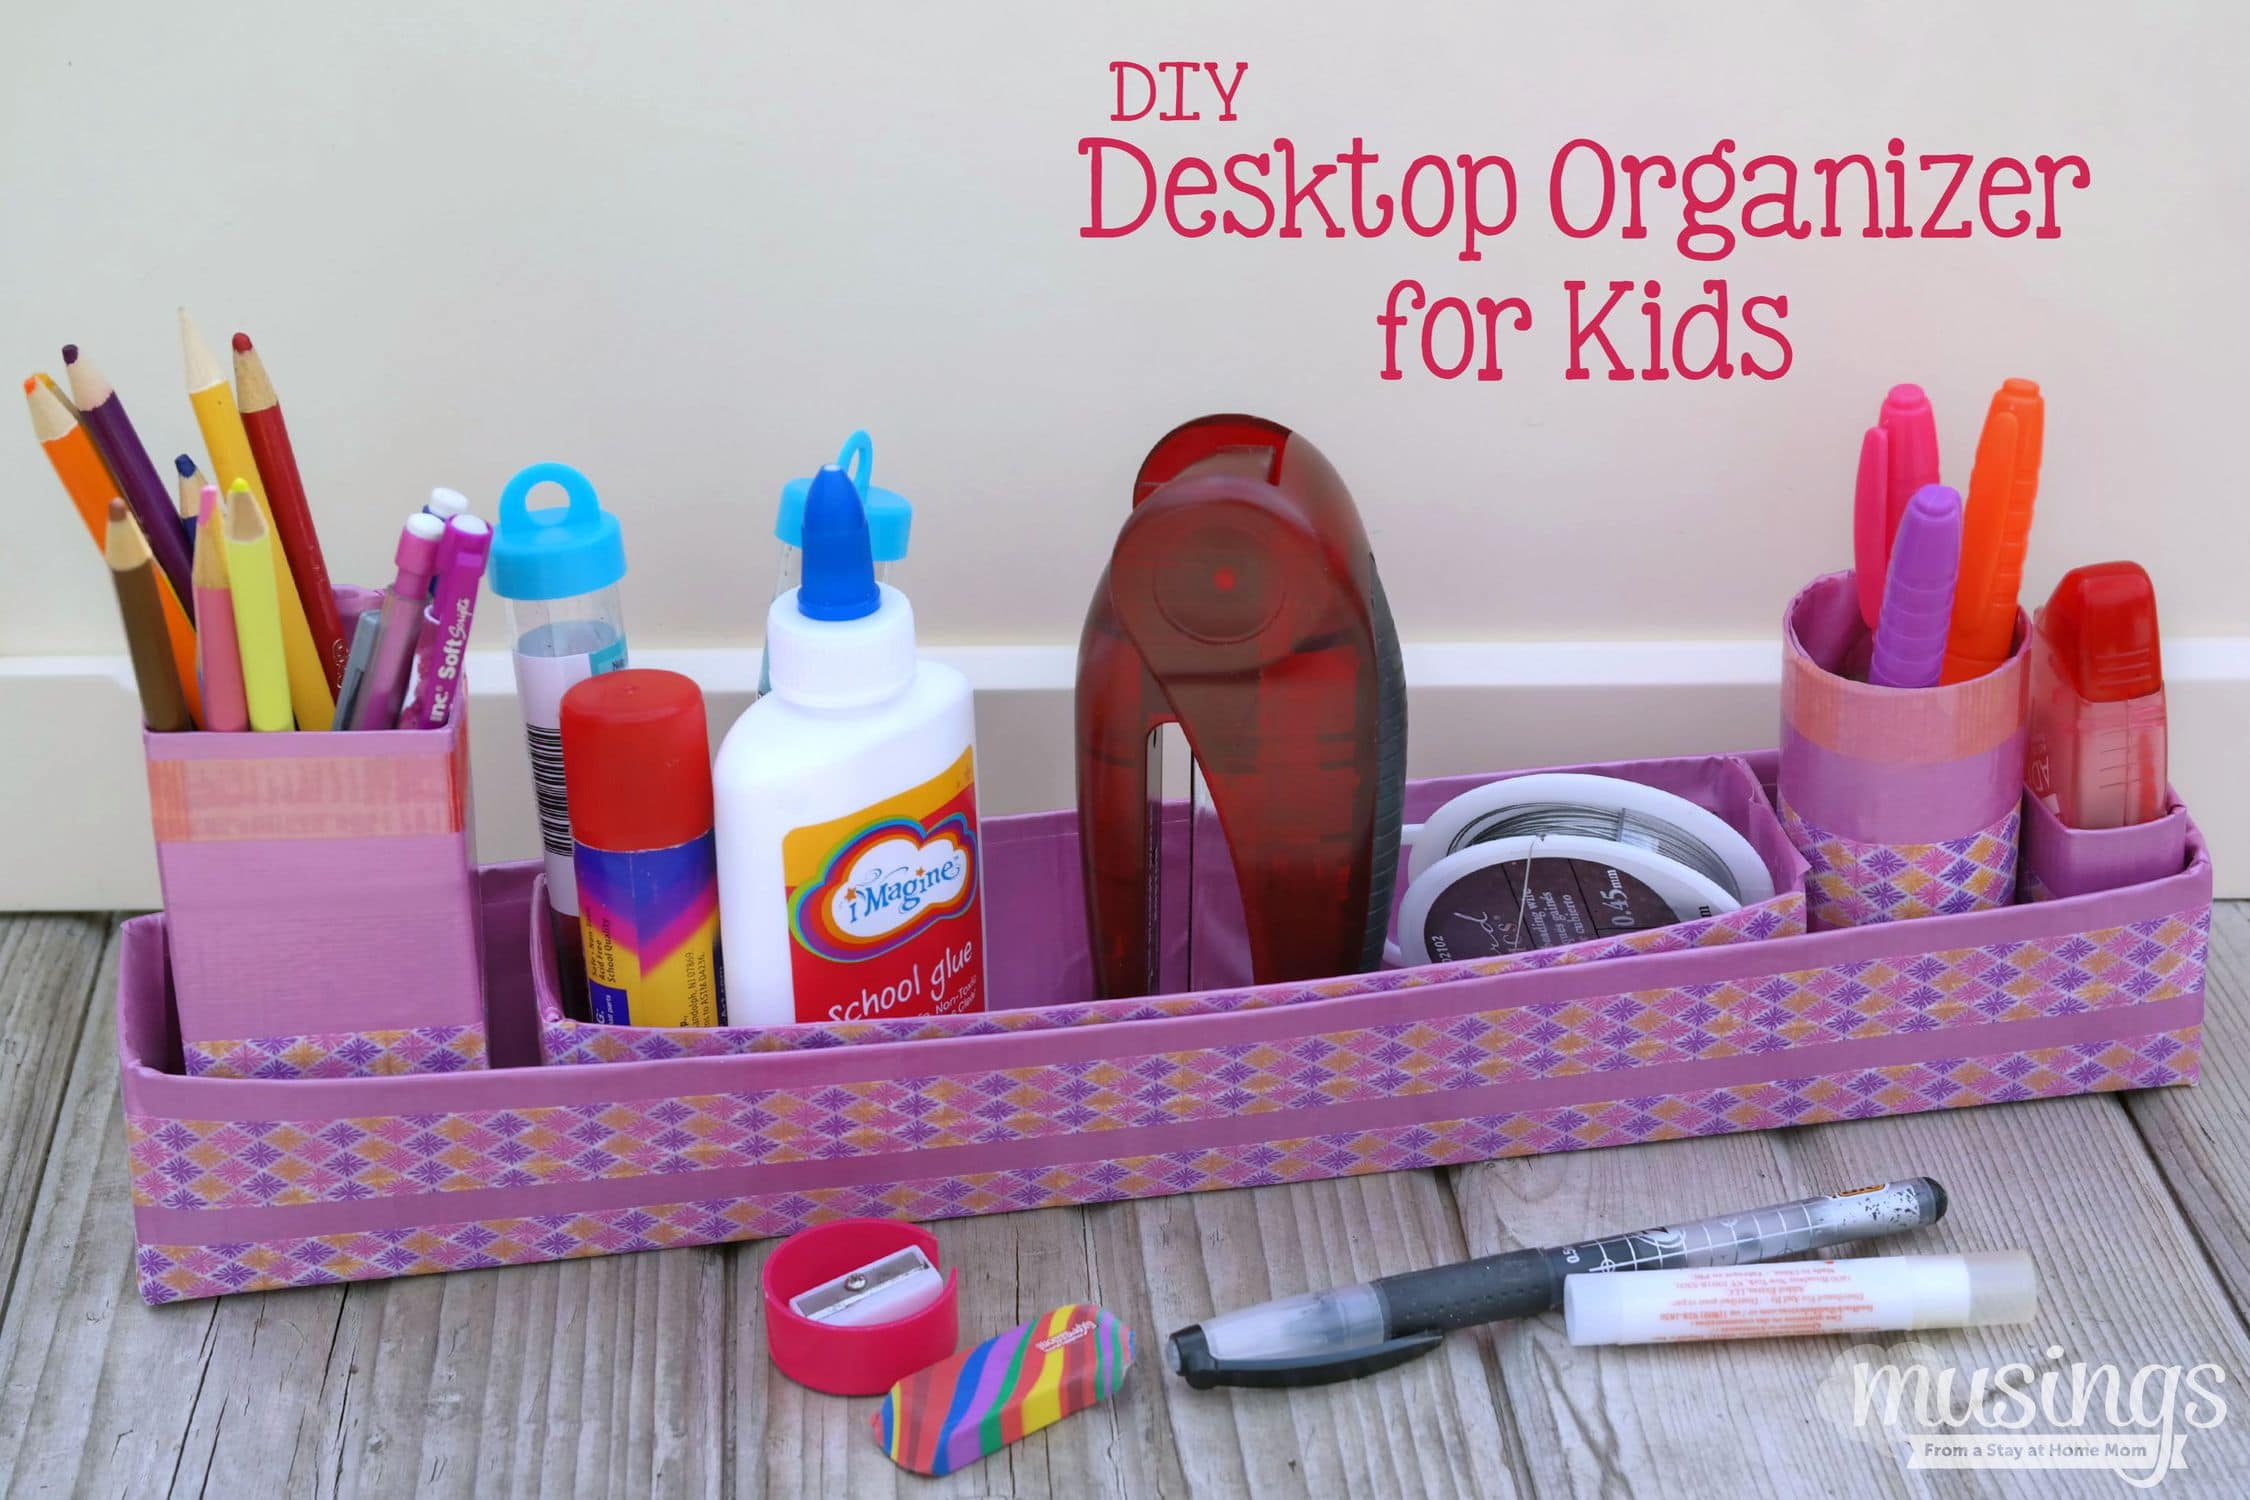 diy desktop organizer for kids musings from a stay at home mom